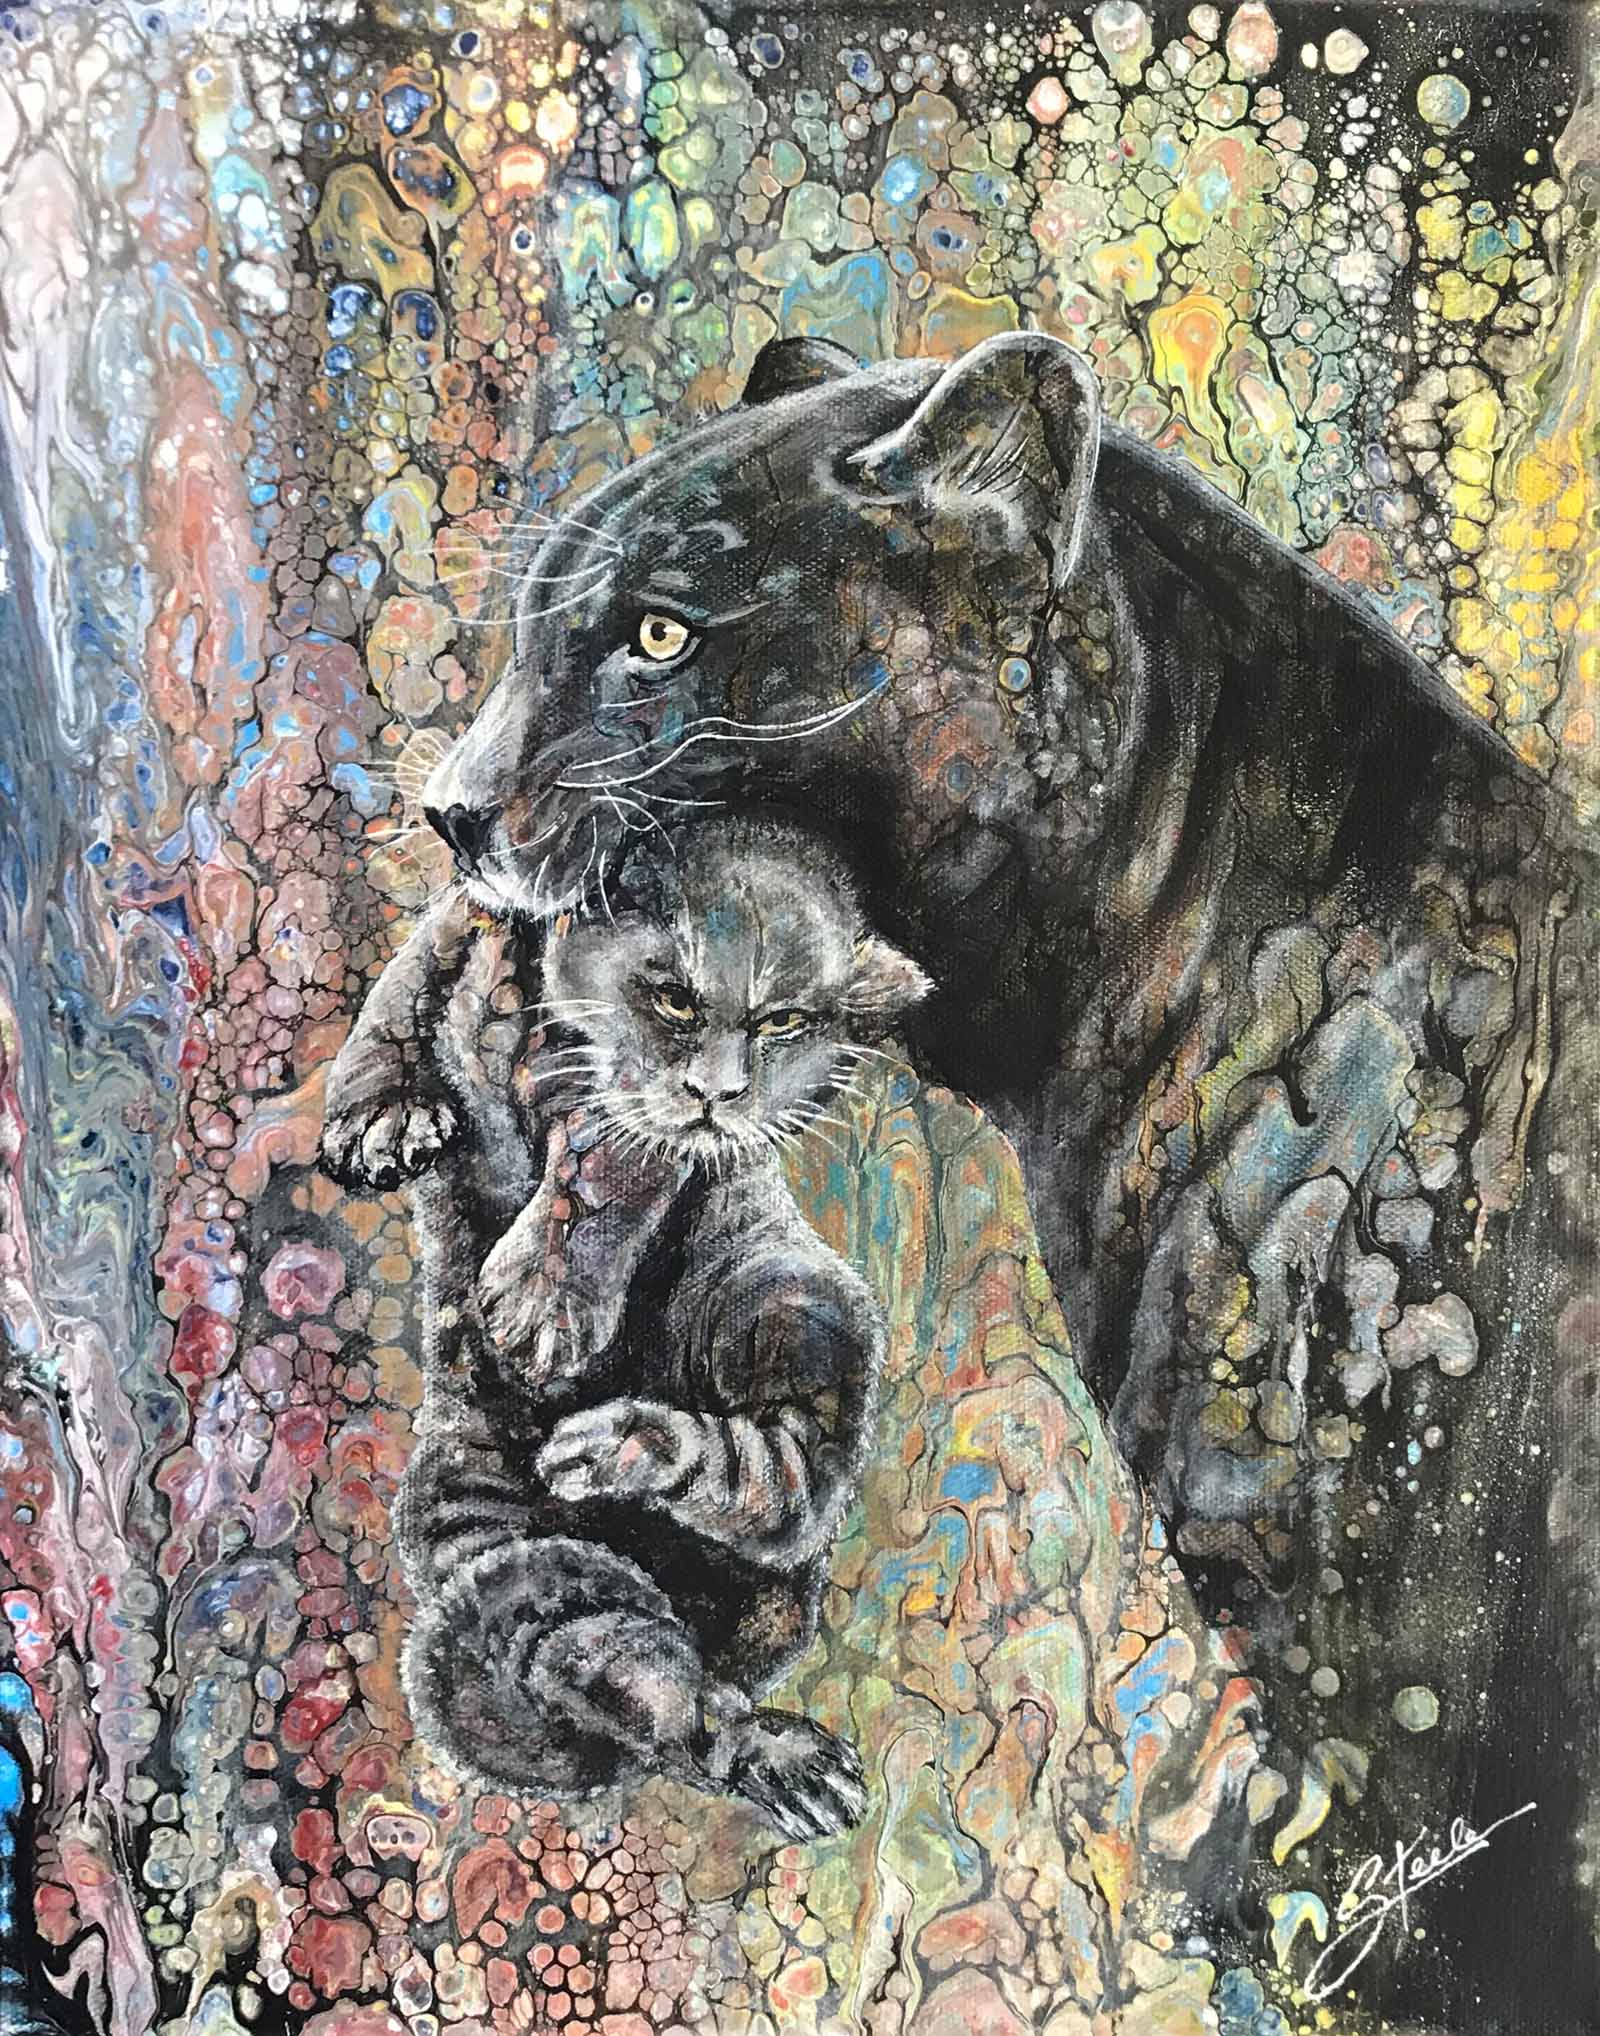 20496938-Linda Steele_Black Panther Mother's Love_Acrylic_12x16_175_2018.jpg